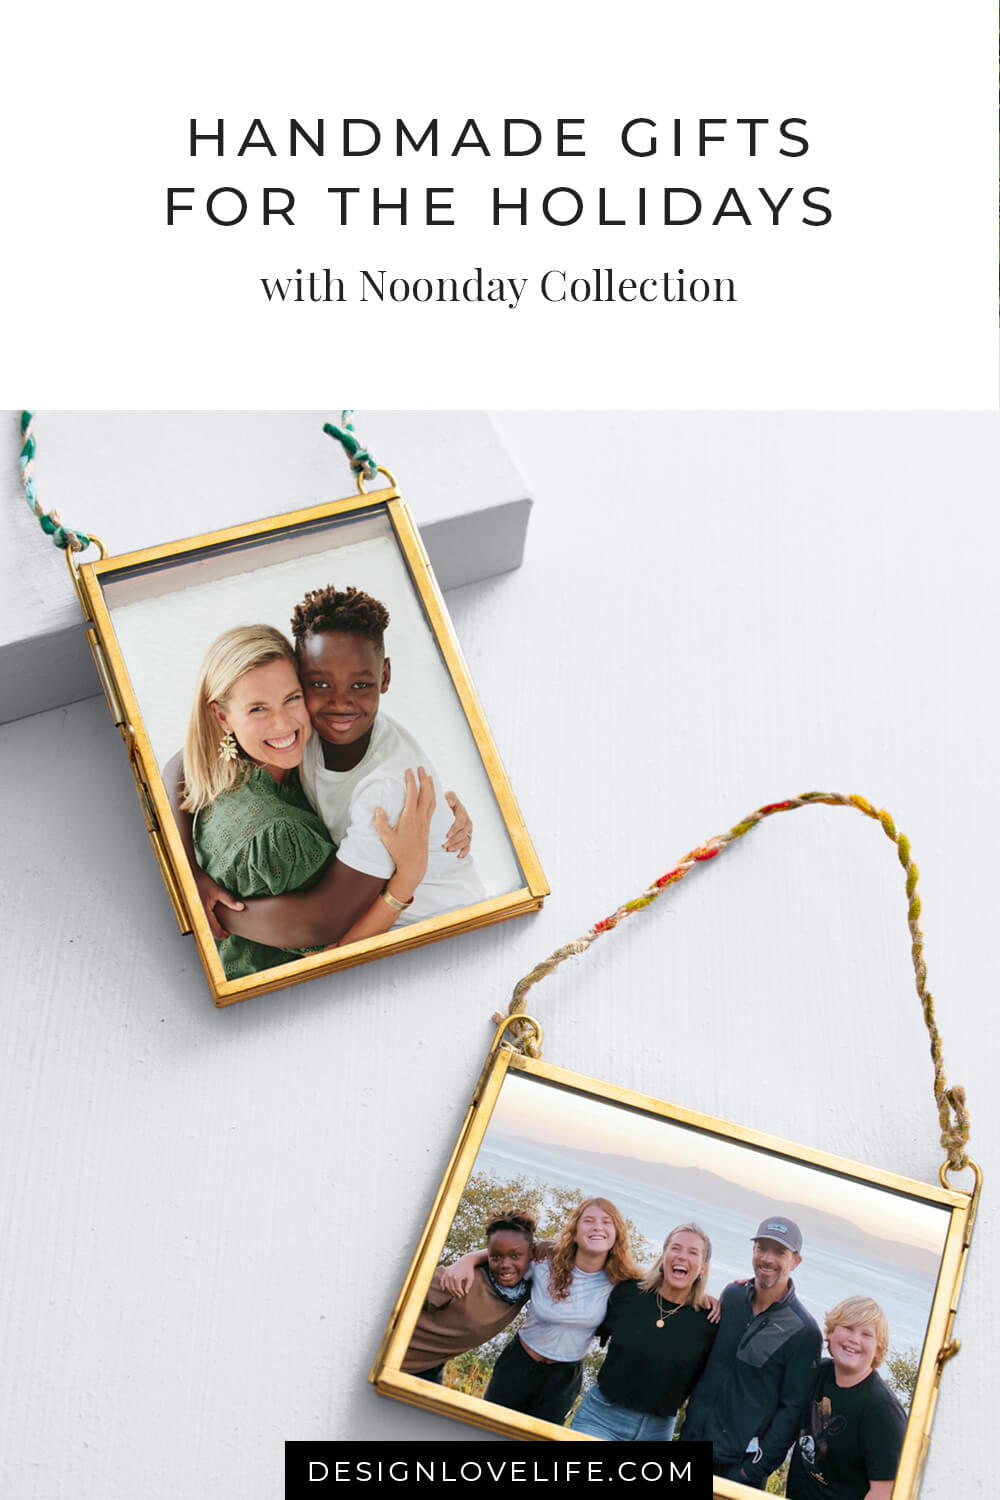 Unique-handmade and handcrafted gifts for the holidays. Shop these Momento Frames that can hold any photo, note, pressed flower. Beautiful crafted brass and can be hung for Christmas or on the wall. Noonday Collection and Annie Johnson.